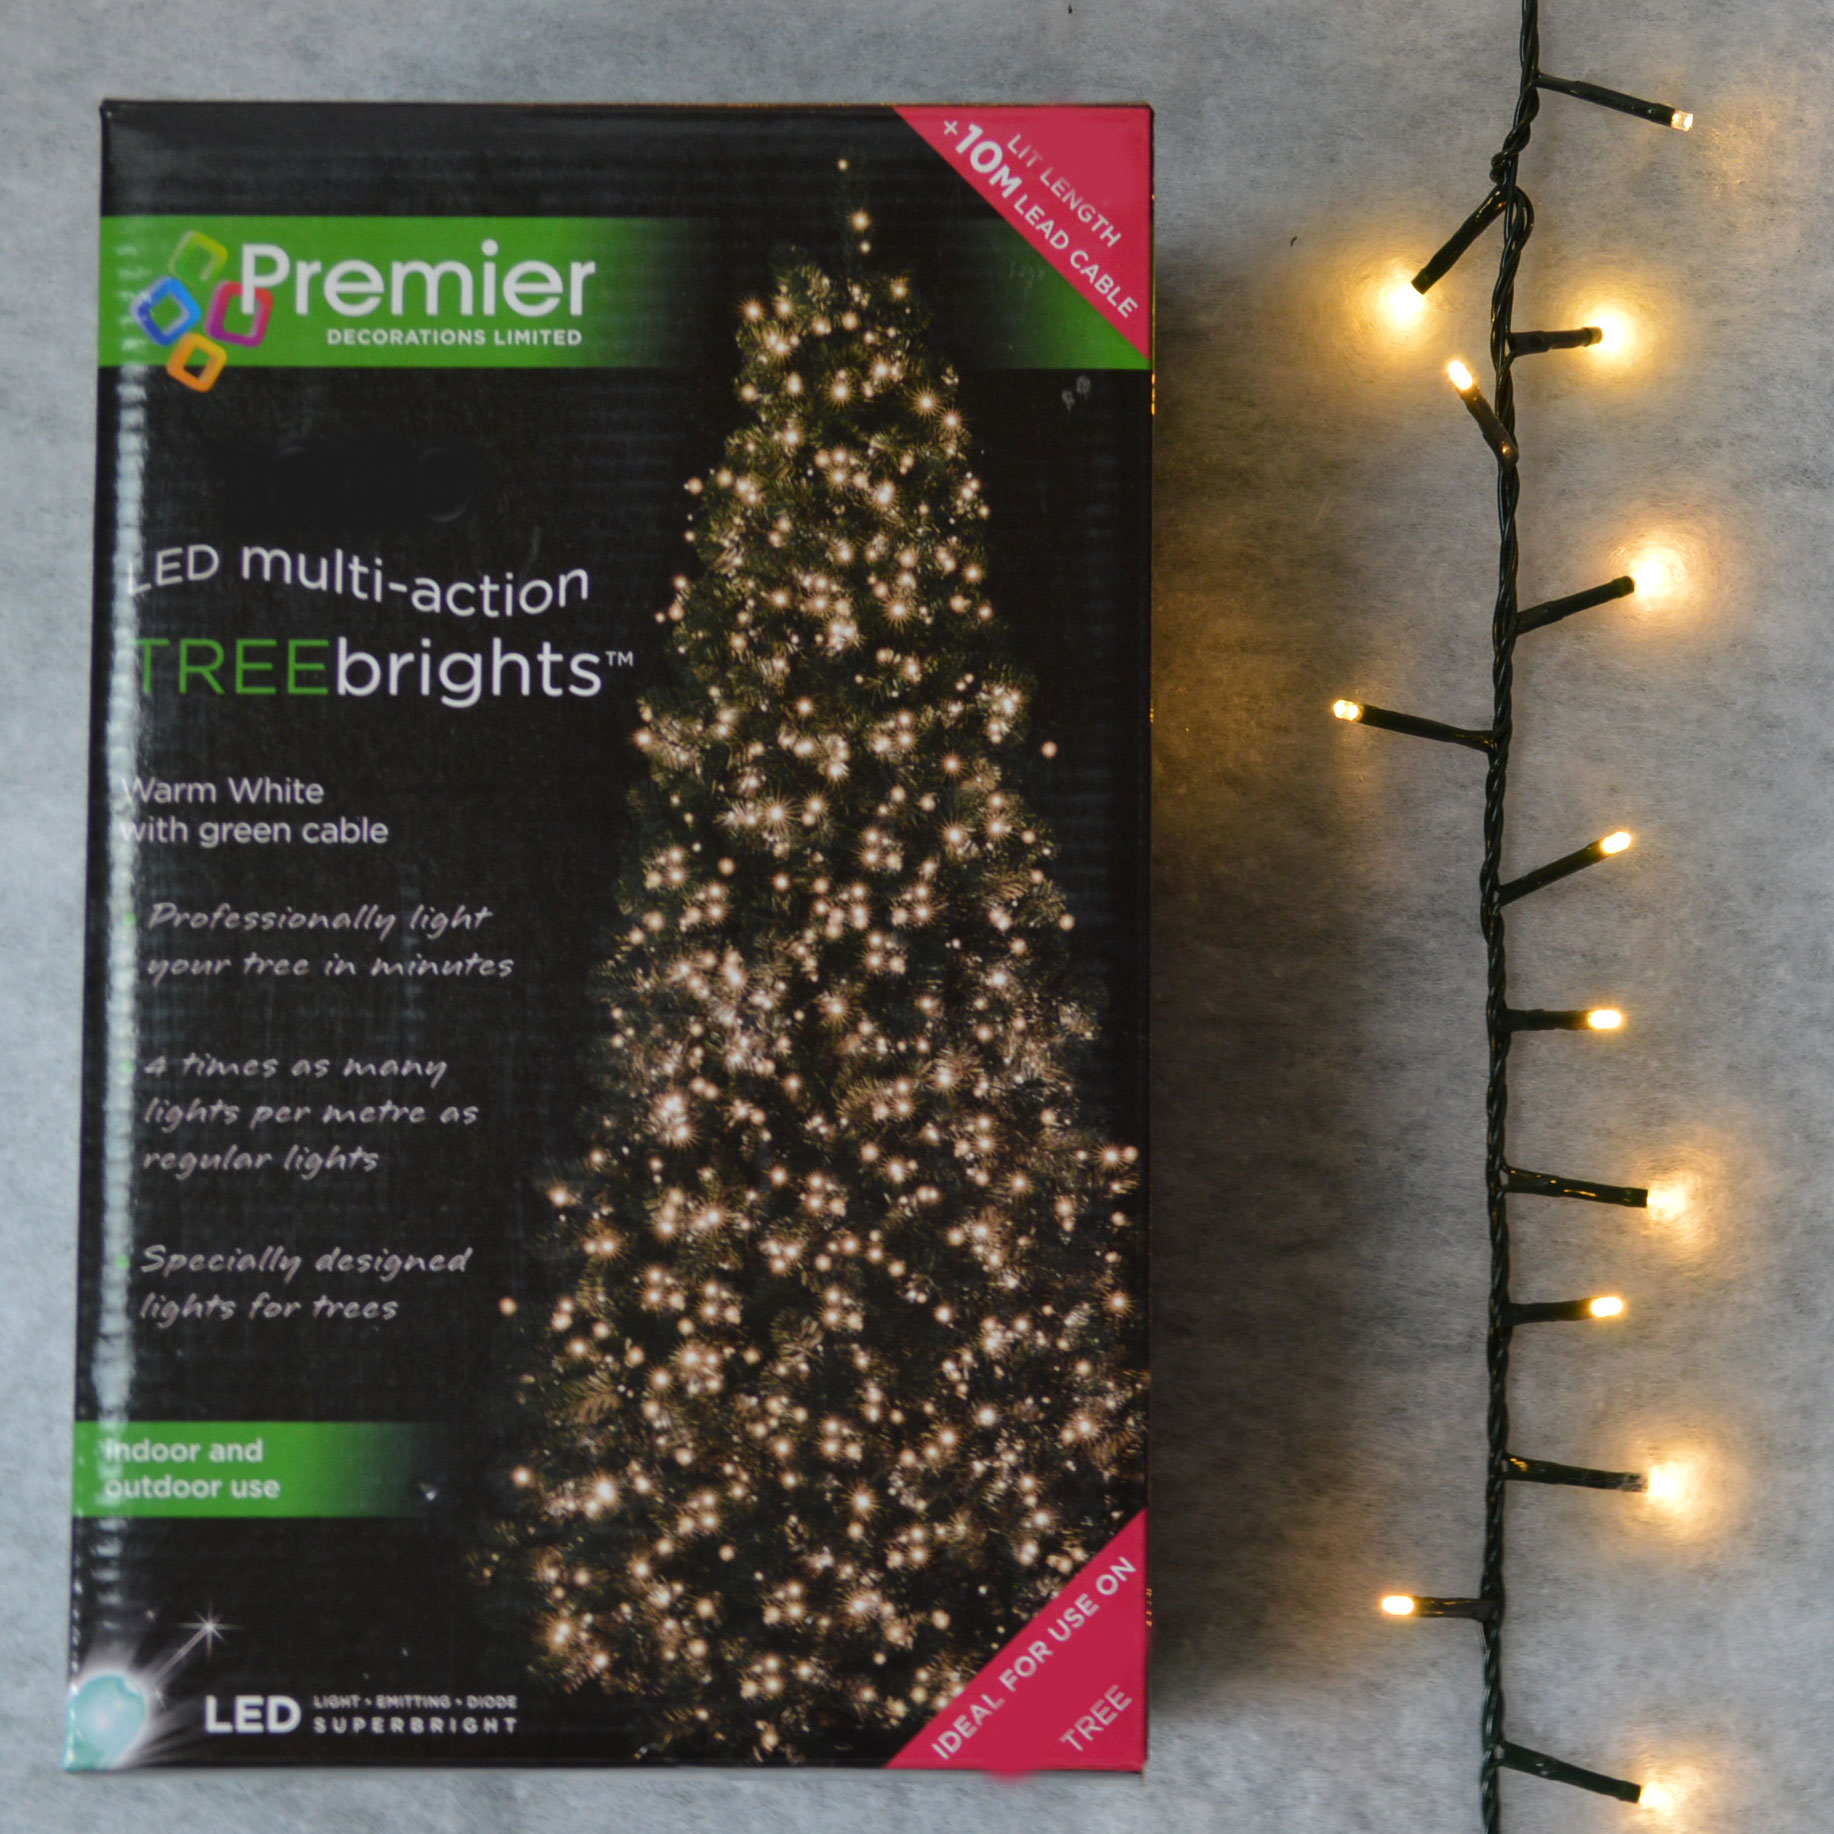 1,000 Led (25M) Premier Treebrights Cluster Christmas Tree Lights In